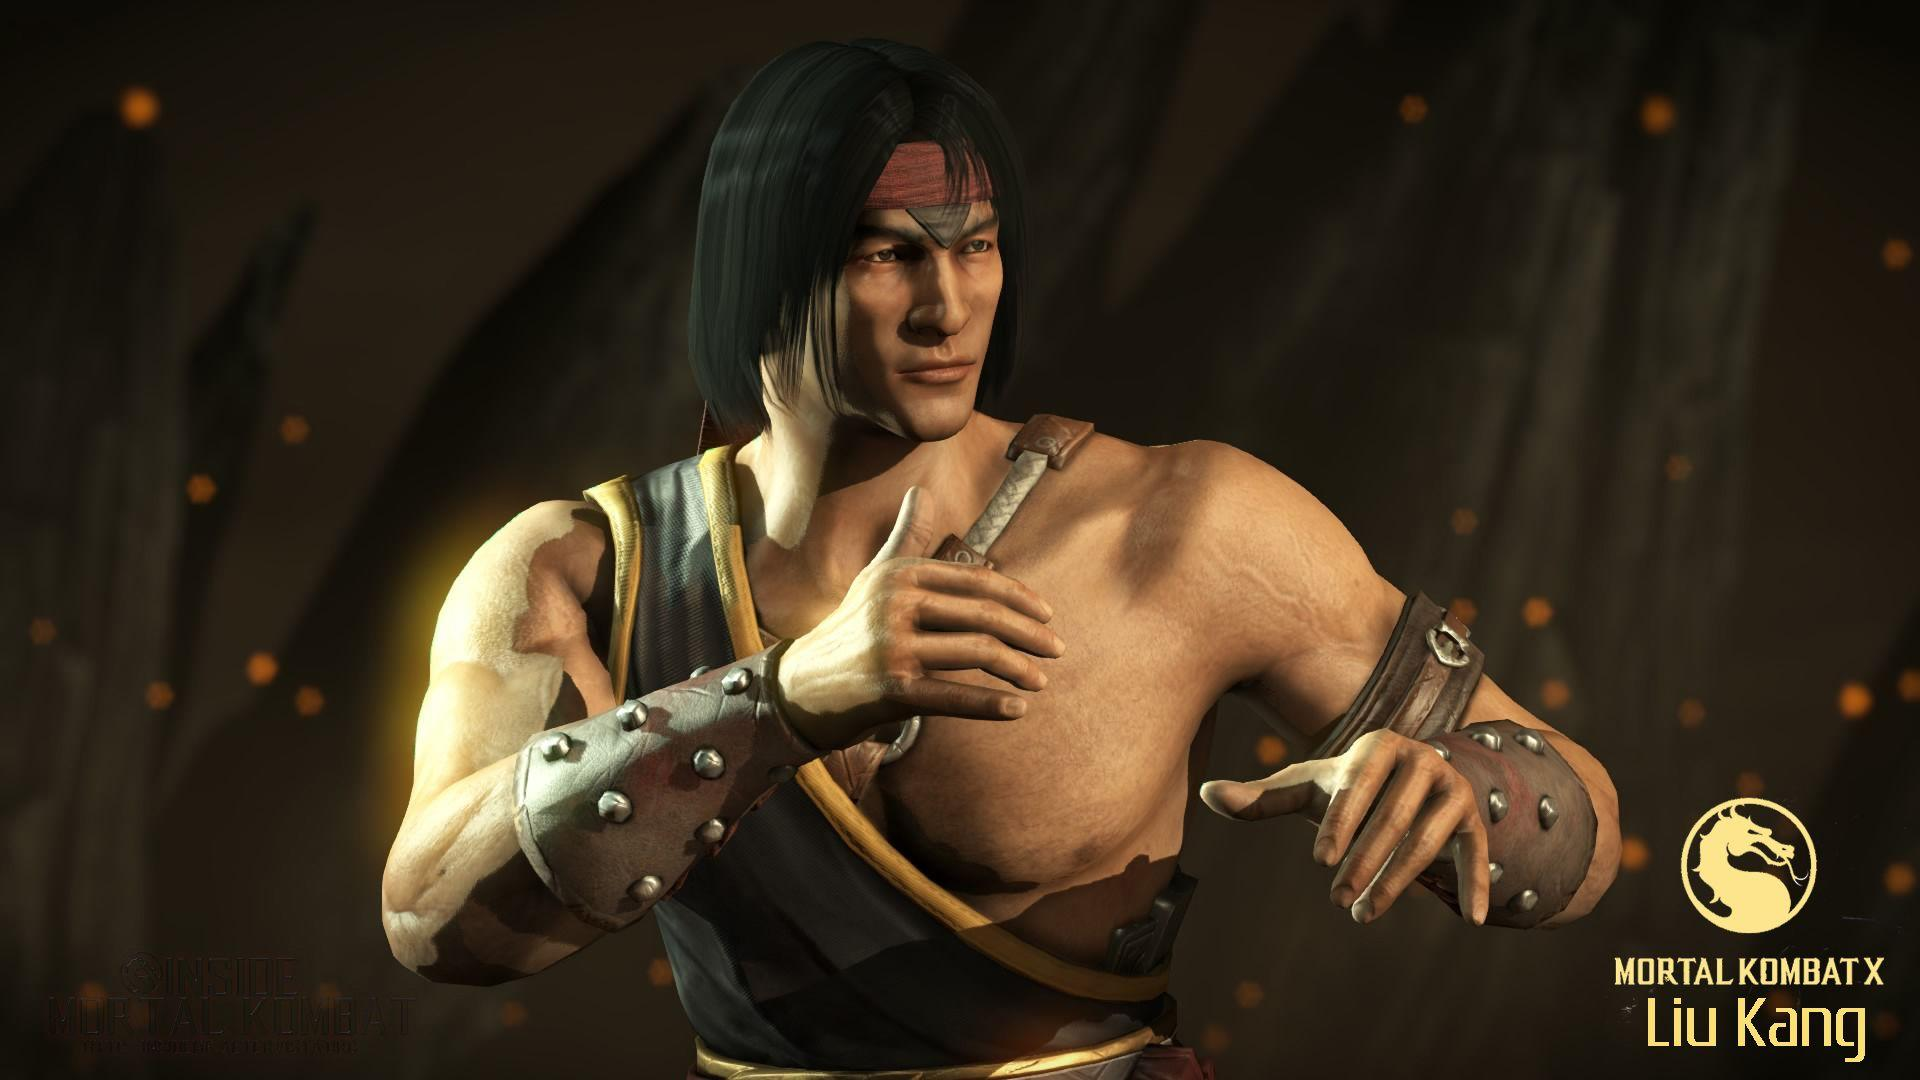 Mortal Kombat Liu Kang Wallpapers Wallpaper Cave